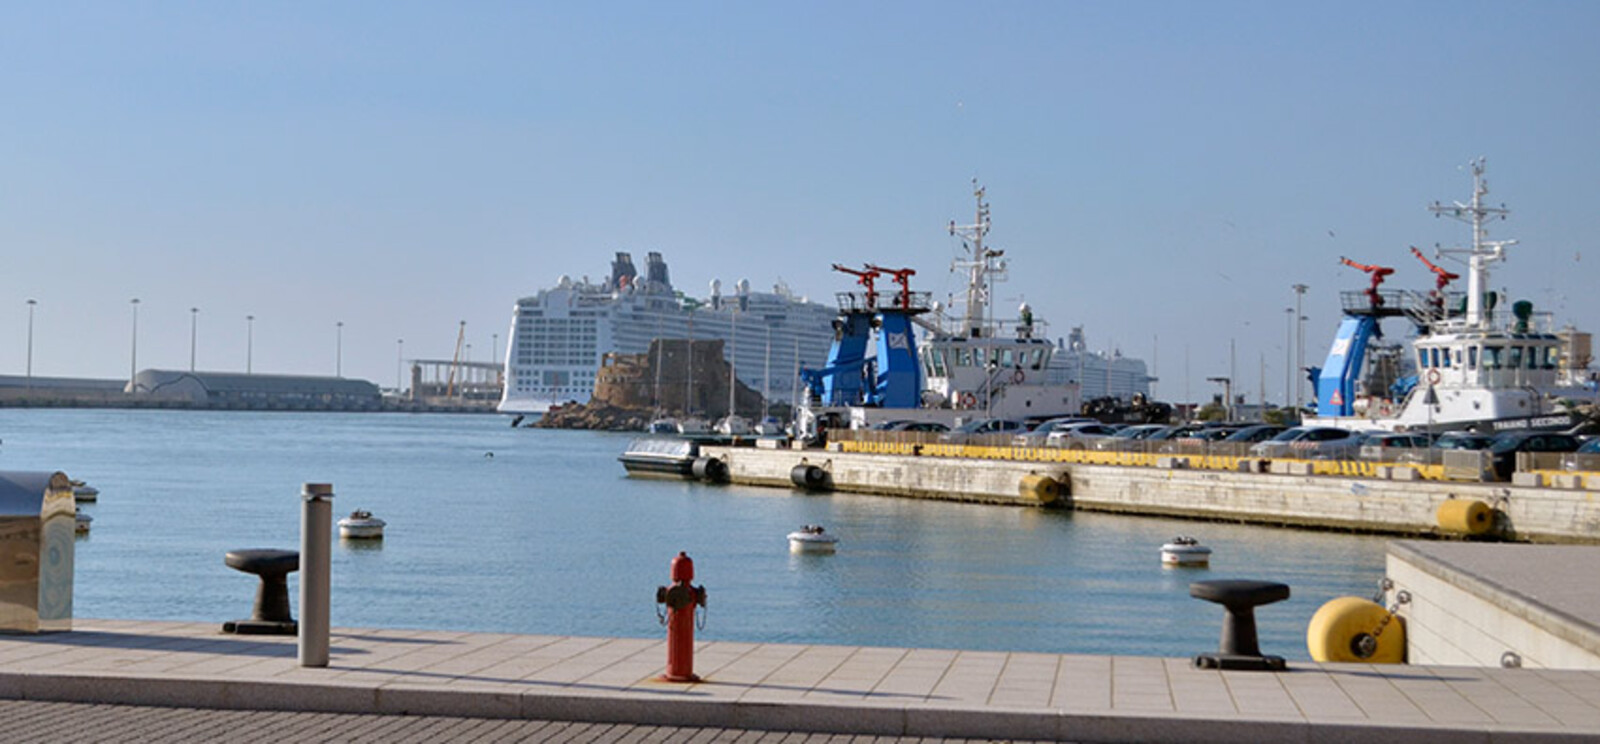 How to get from civitavecchia port to rome all the - Getting from civitavecchia port to rome ...